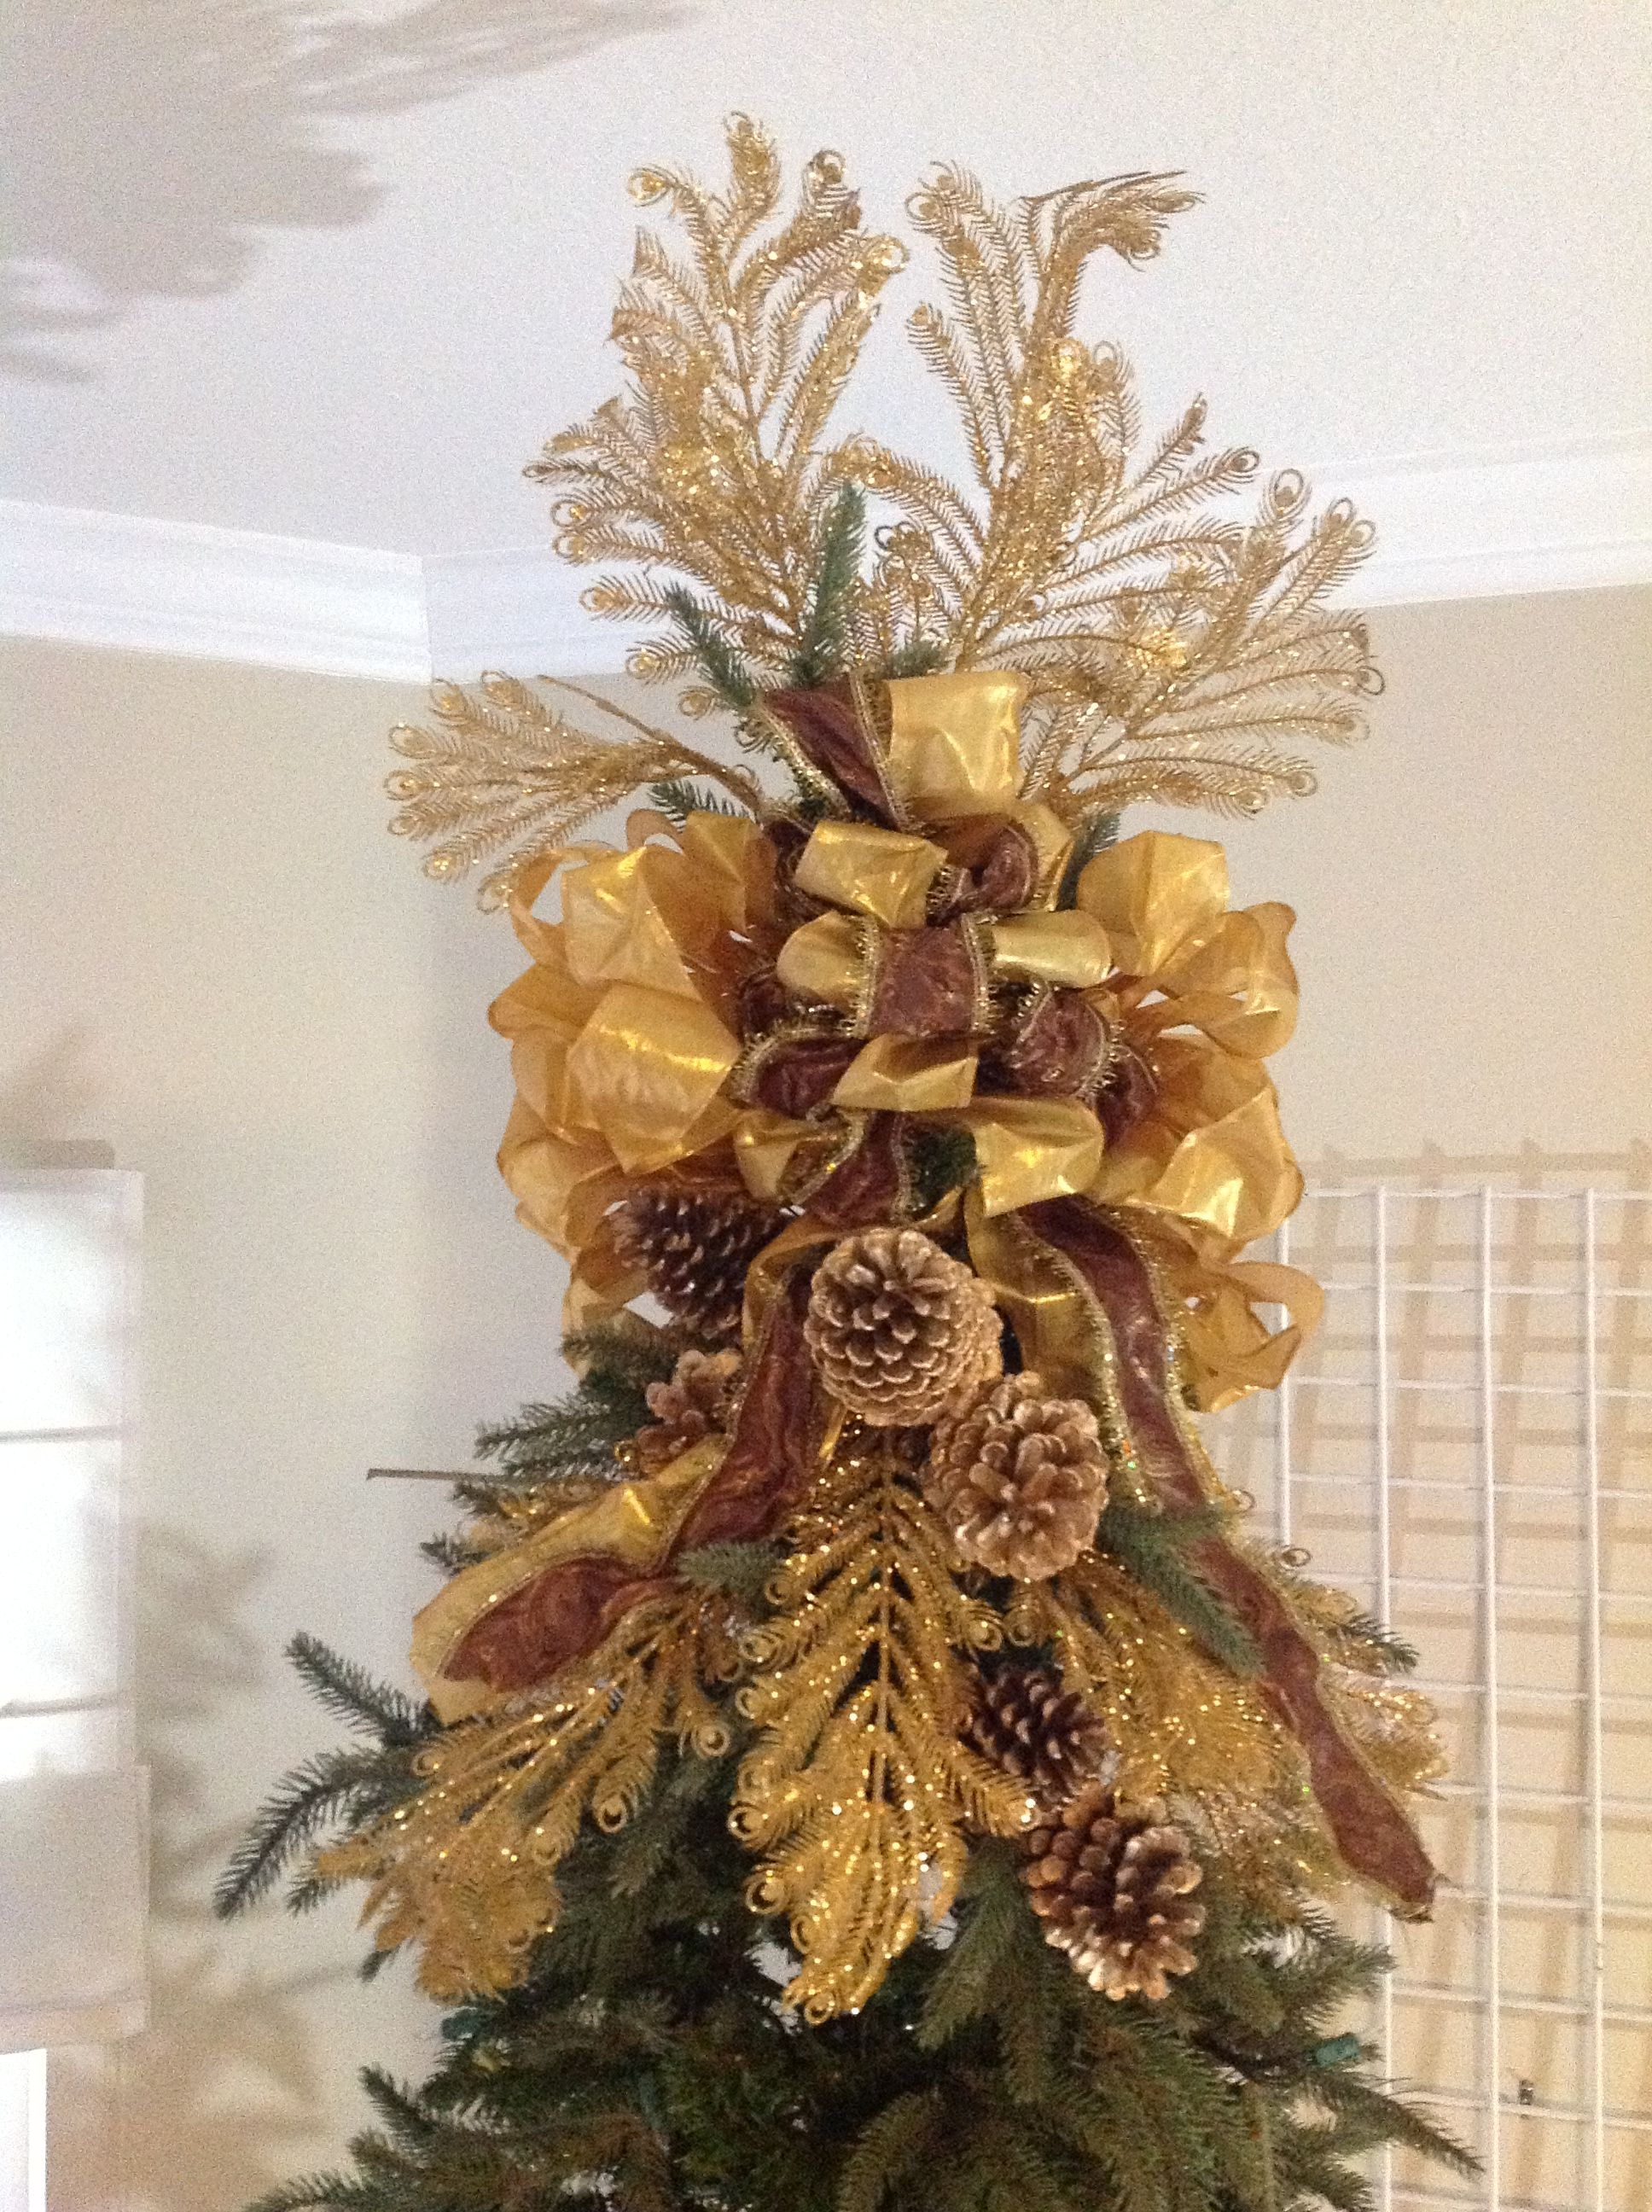 Create Bows for Gifts, Ribbon Wreaths and Ornament